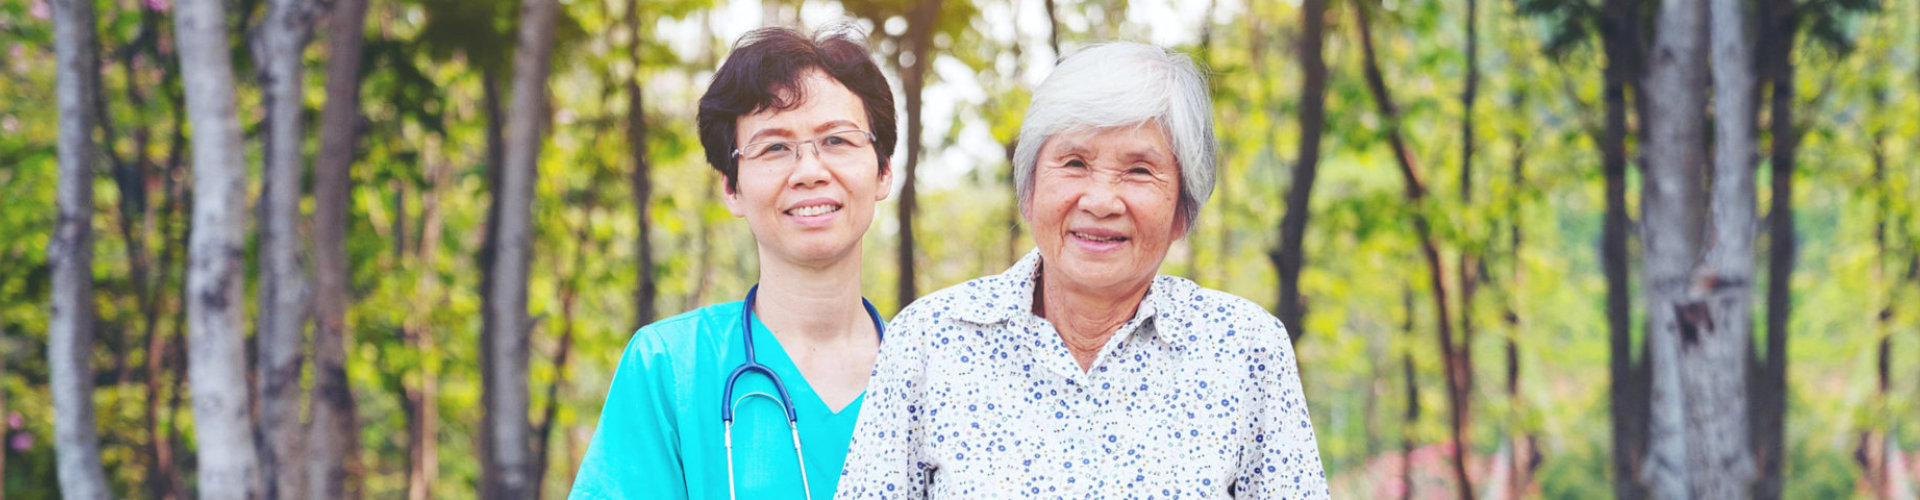 health worker wearing eyeglasses and senior woman smiling